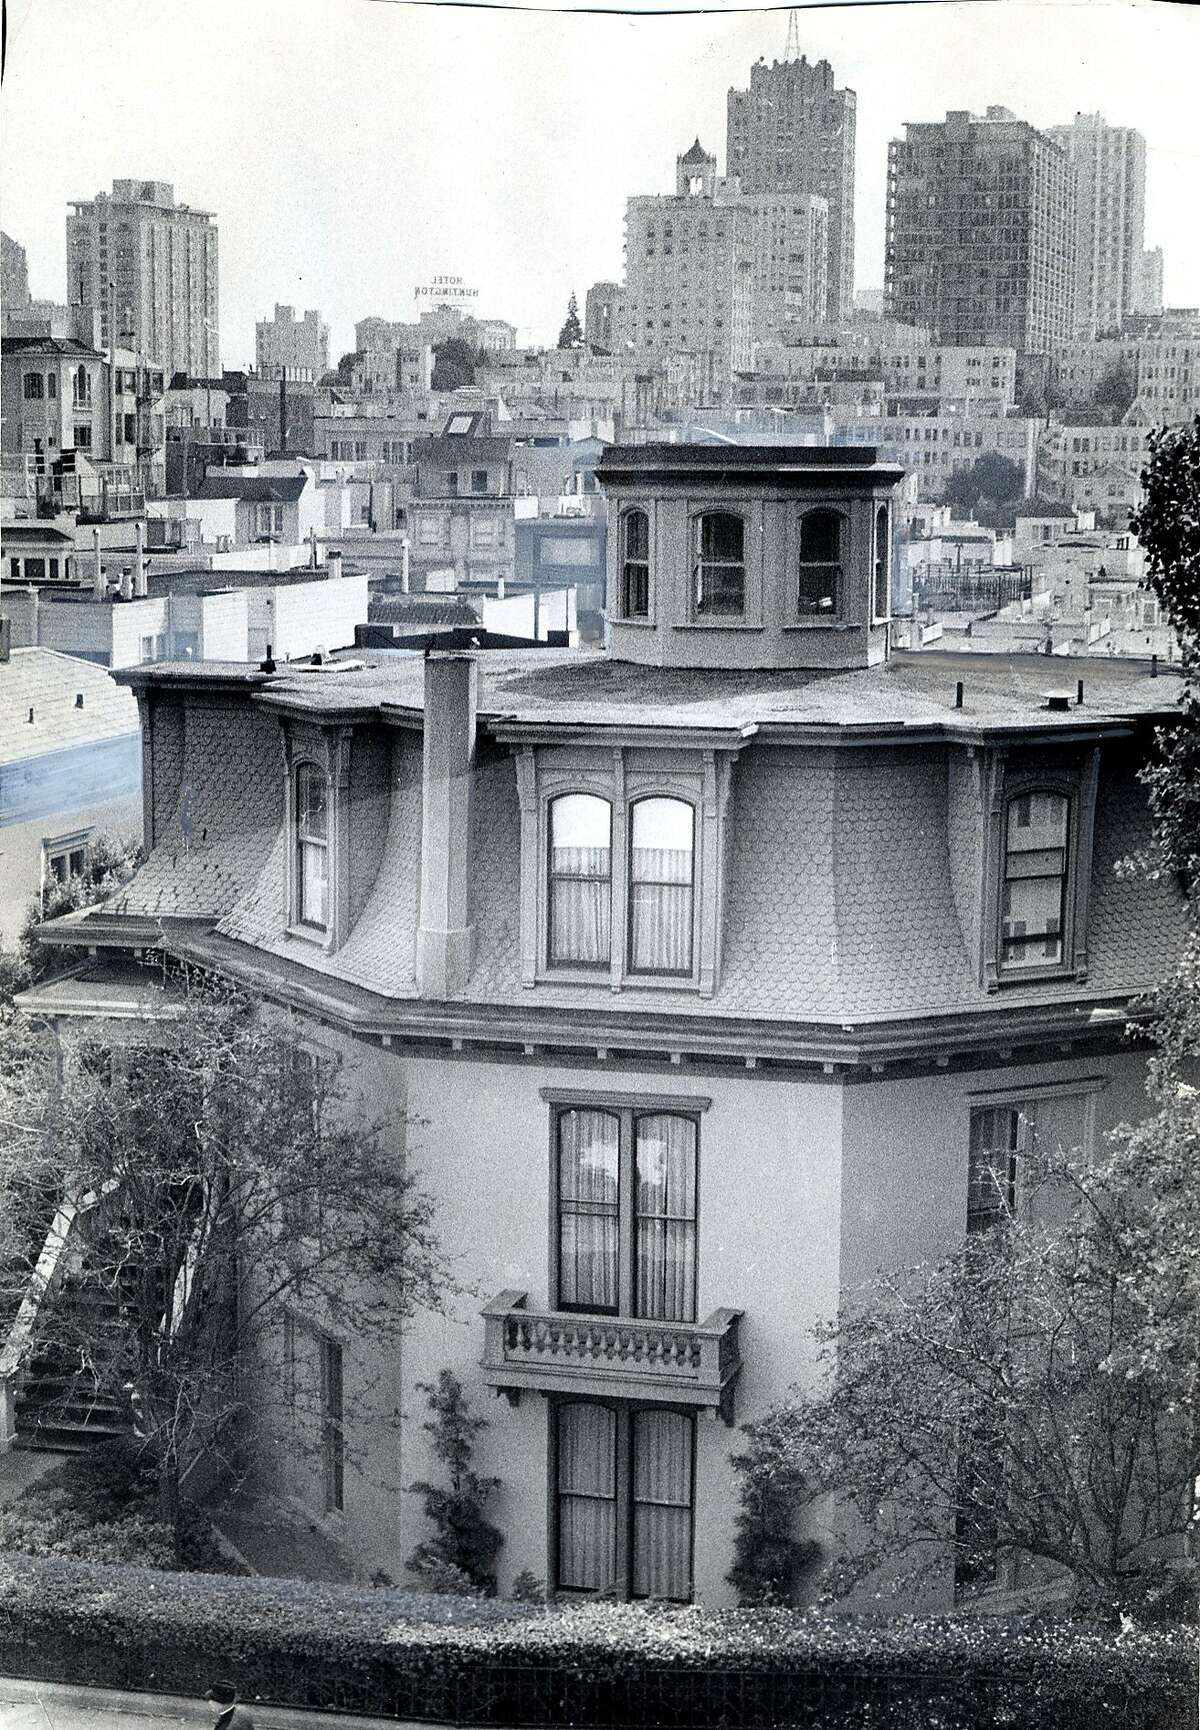 The Octagon House at 1067 Green Street photographed in 1970, Ran on: 11-19-2004 The Octagon House, believed to be the oldest house in the city, was purchased by Donald Houghton 50 years ago this week. Ran on: 11-19-2004 The Octagon House, believed to be the oldest house in the city, was purchased by Donald Houghton 50 years ago this week.